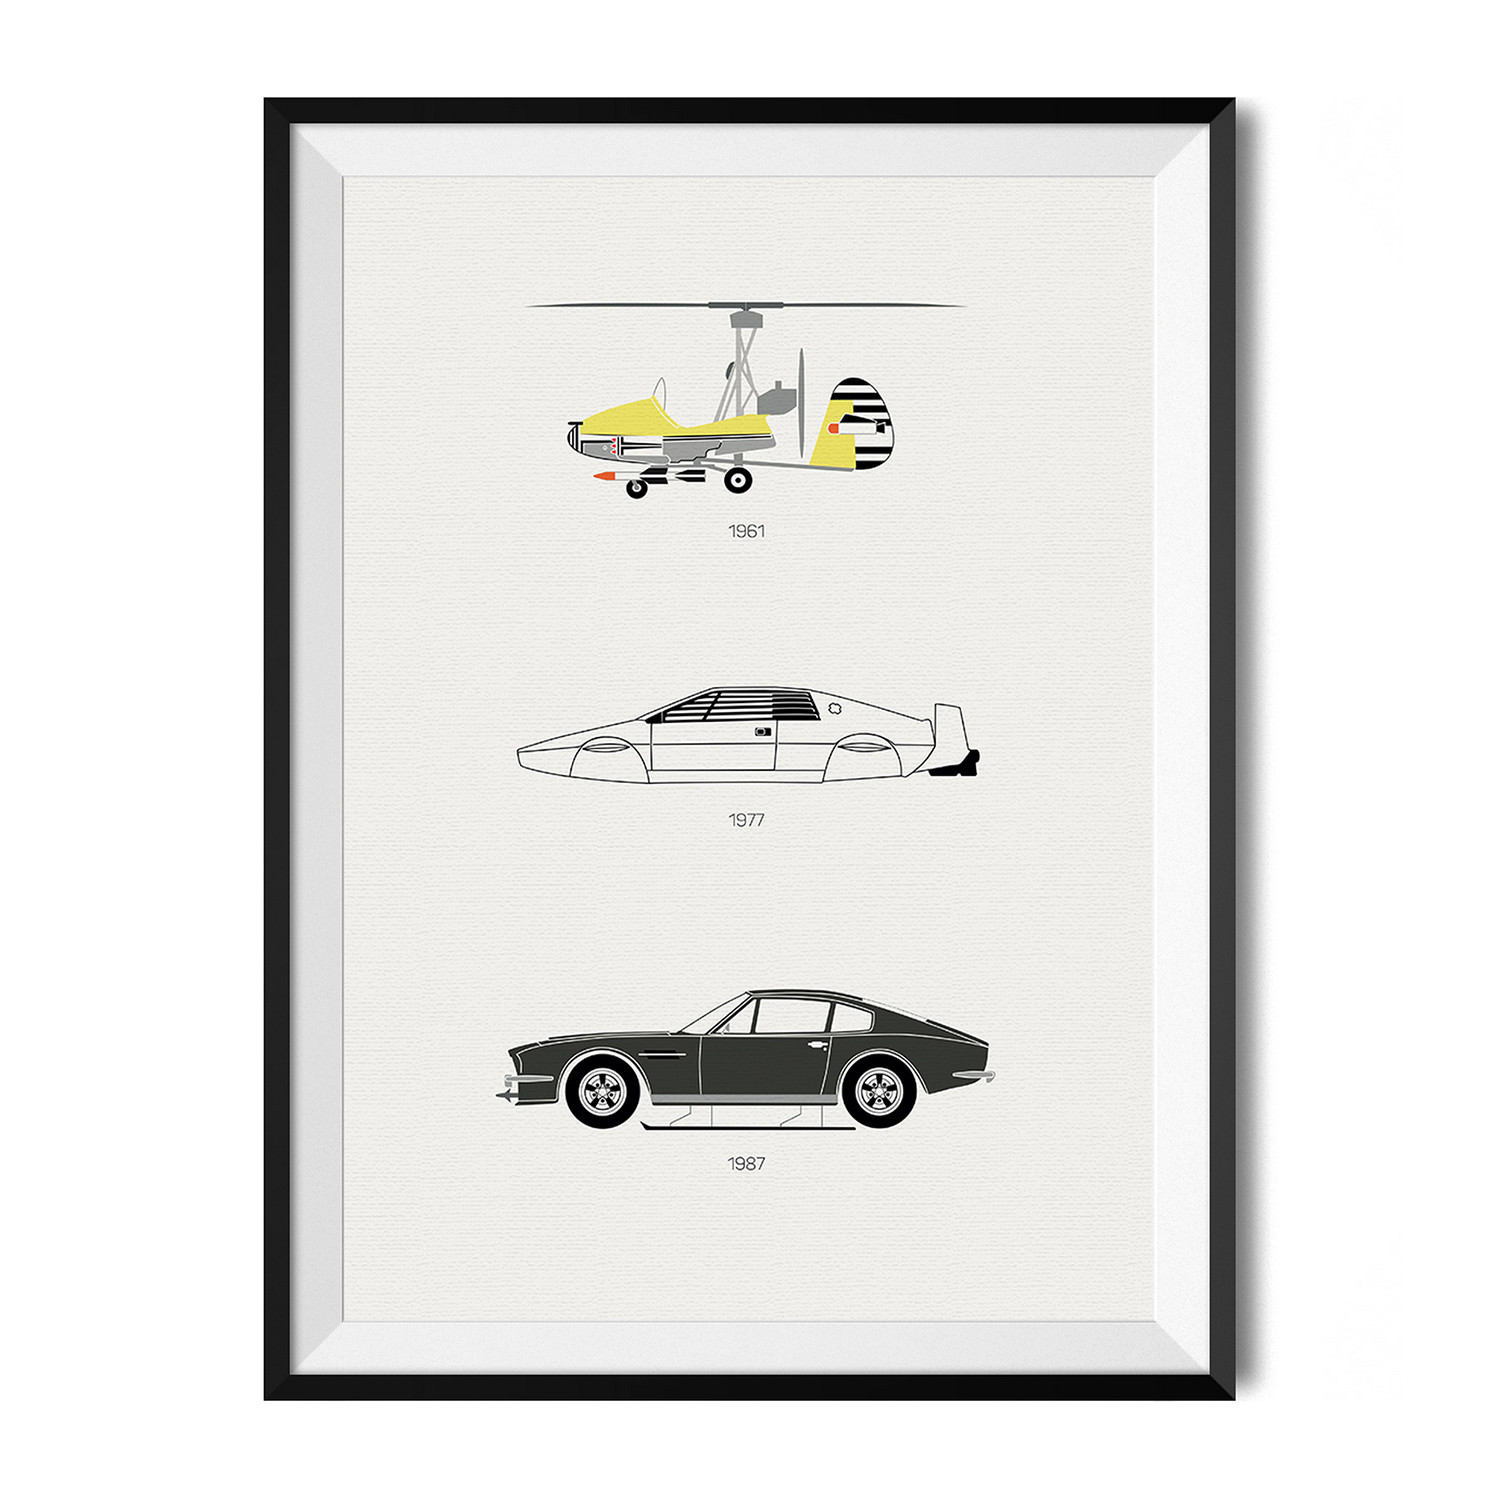 Large Black And White Posters Live And Let Drive The Iconic James Bond Car Rear View